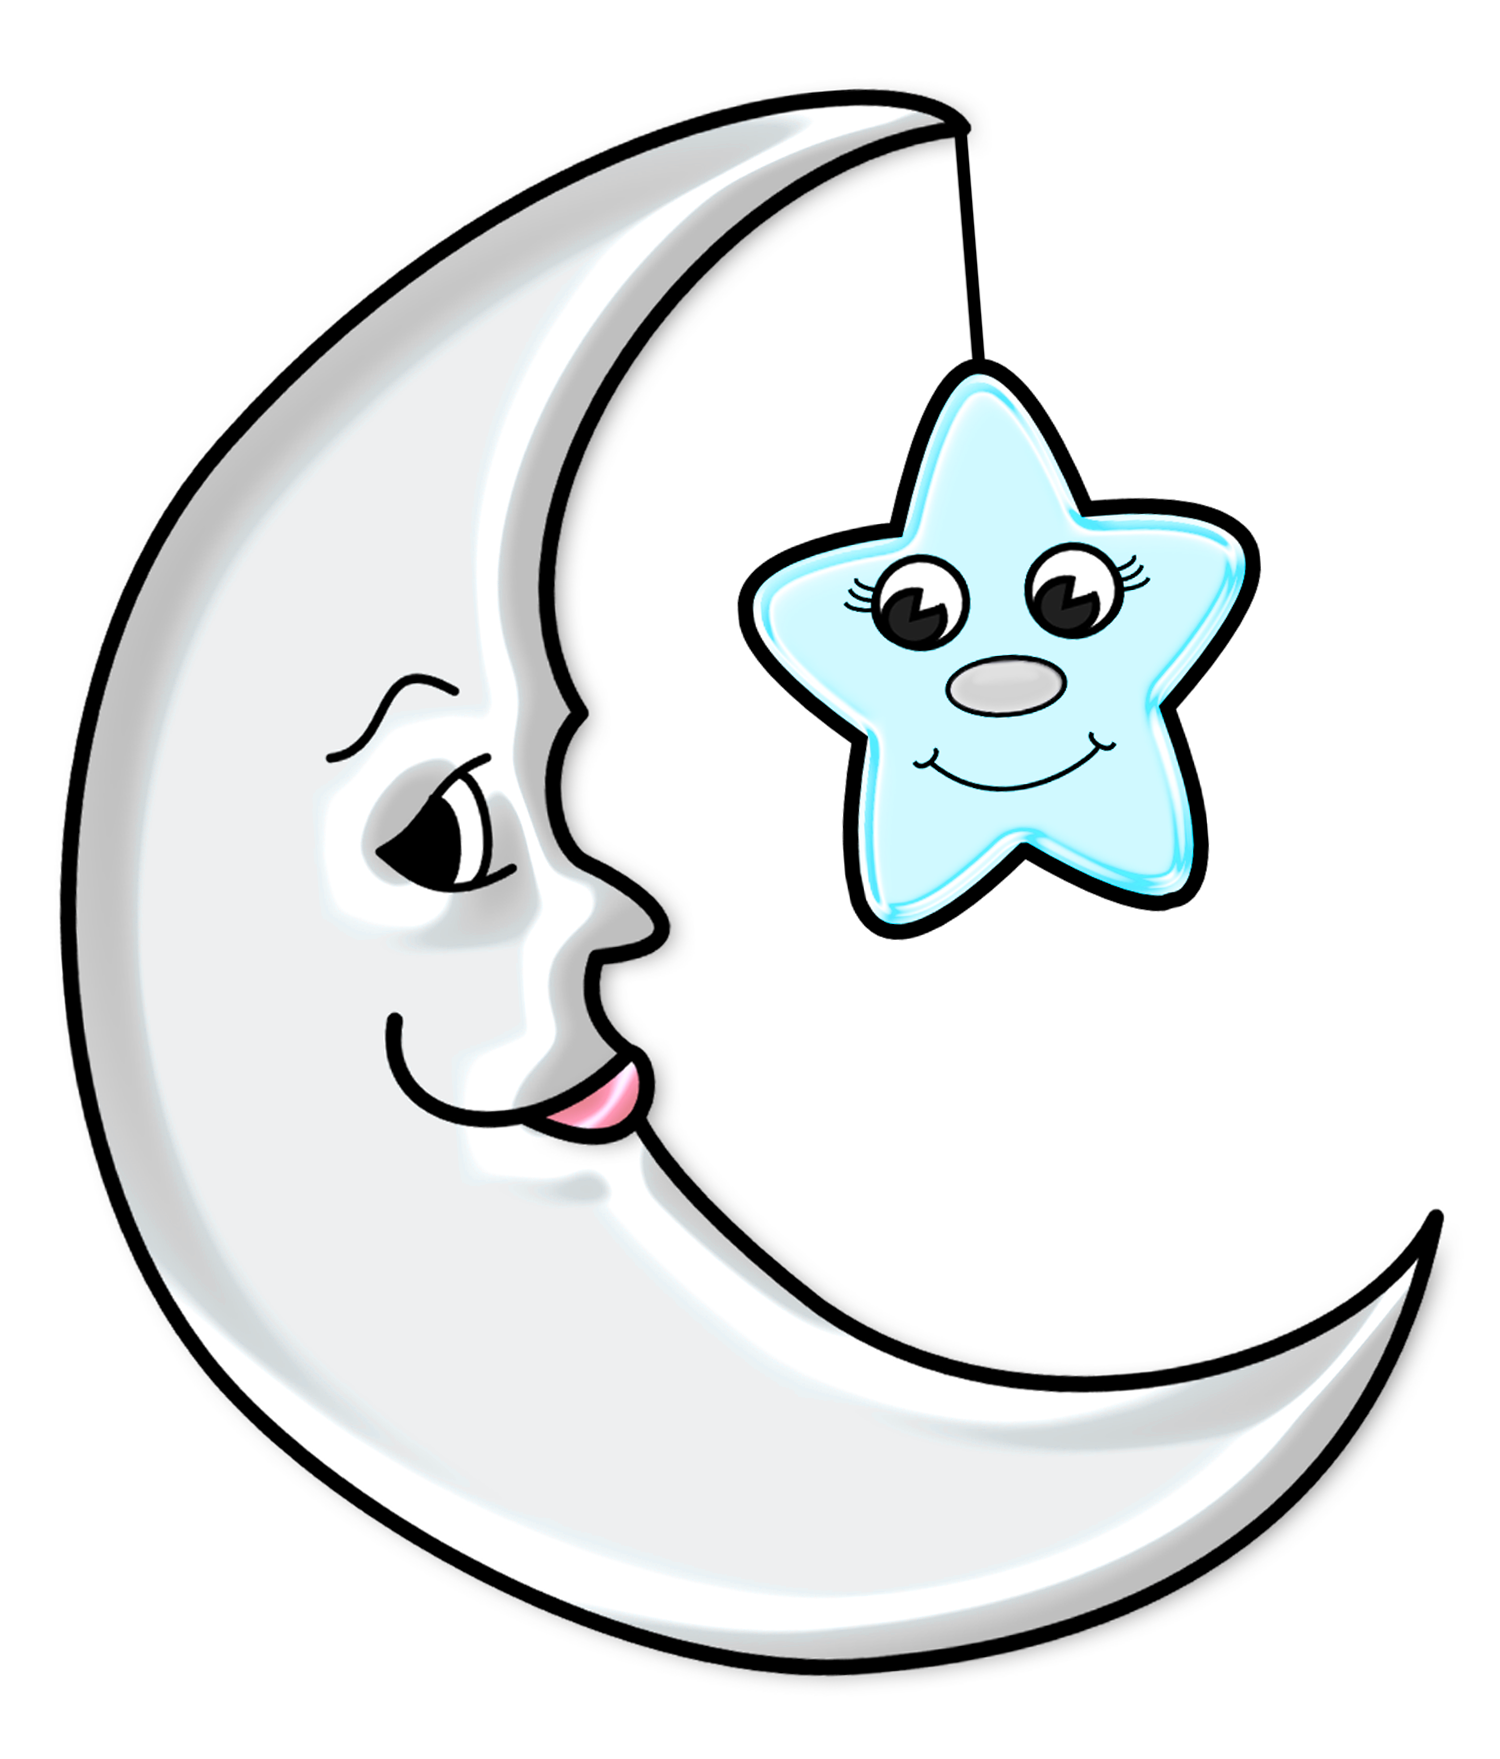 Hd drawing moon. Cute with star transparent